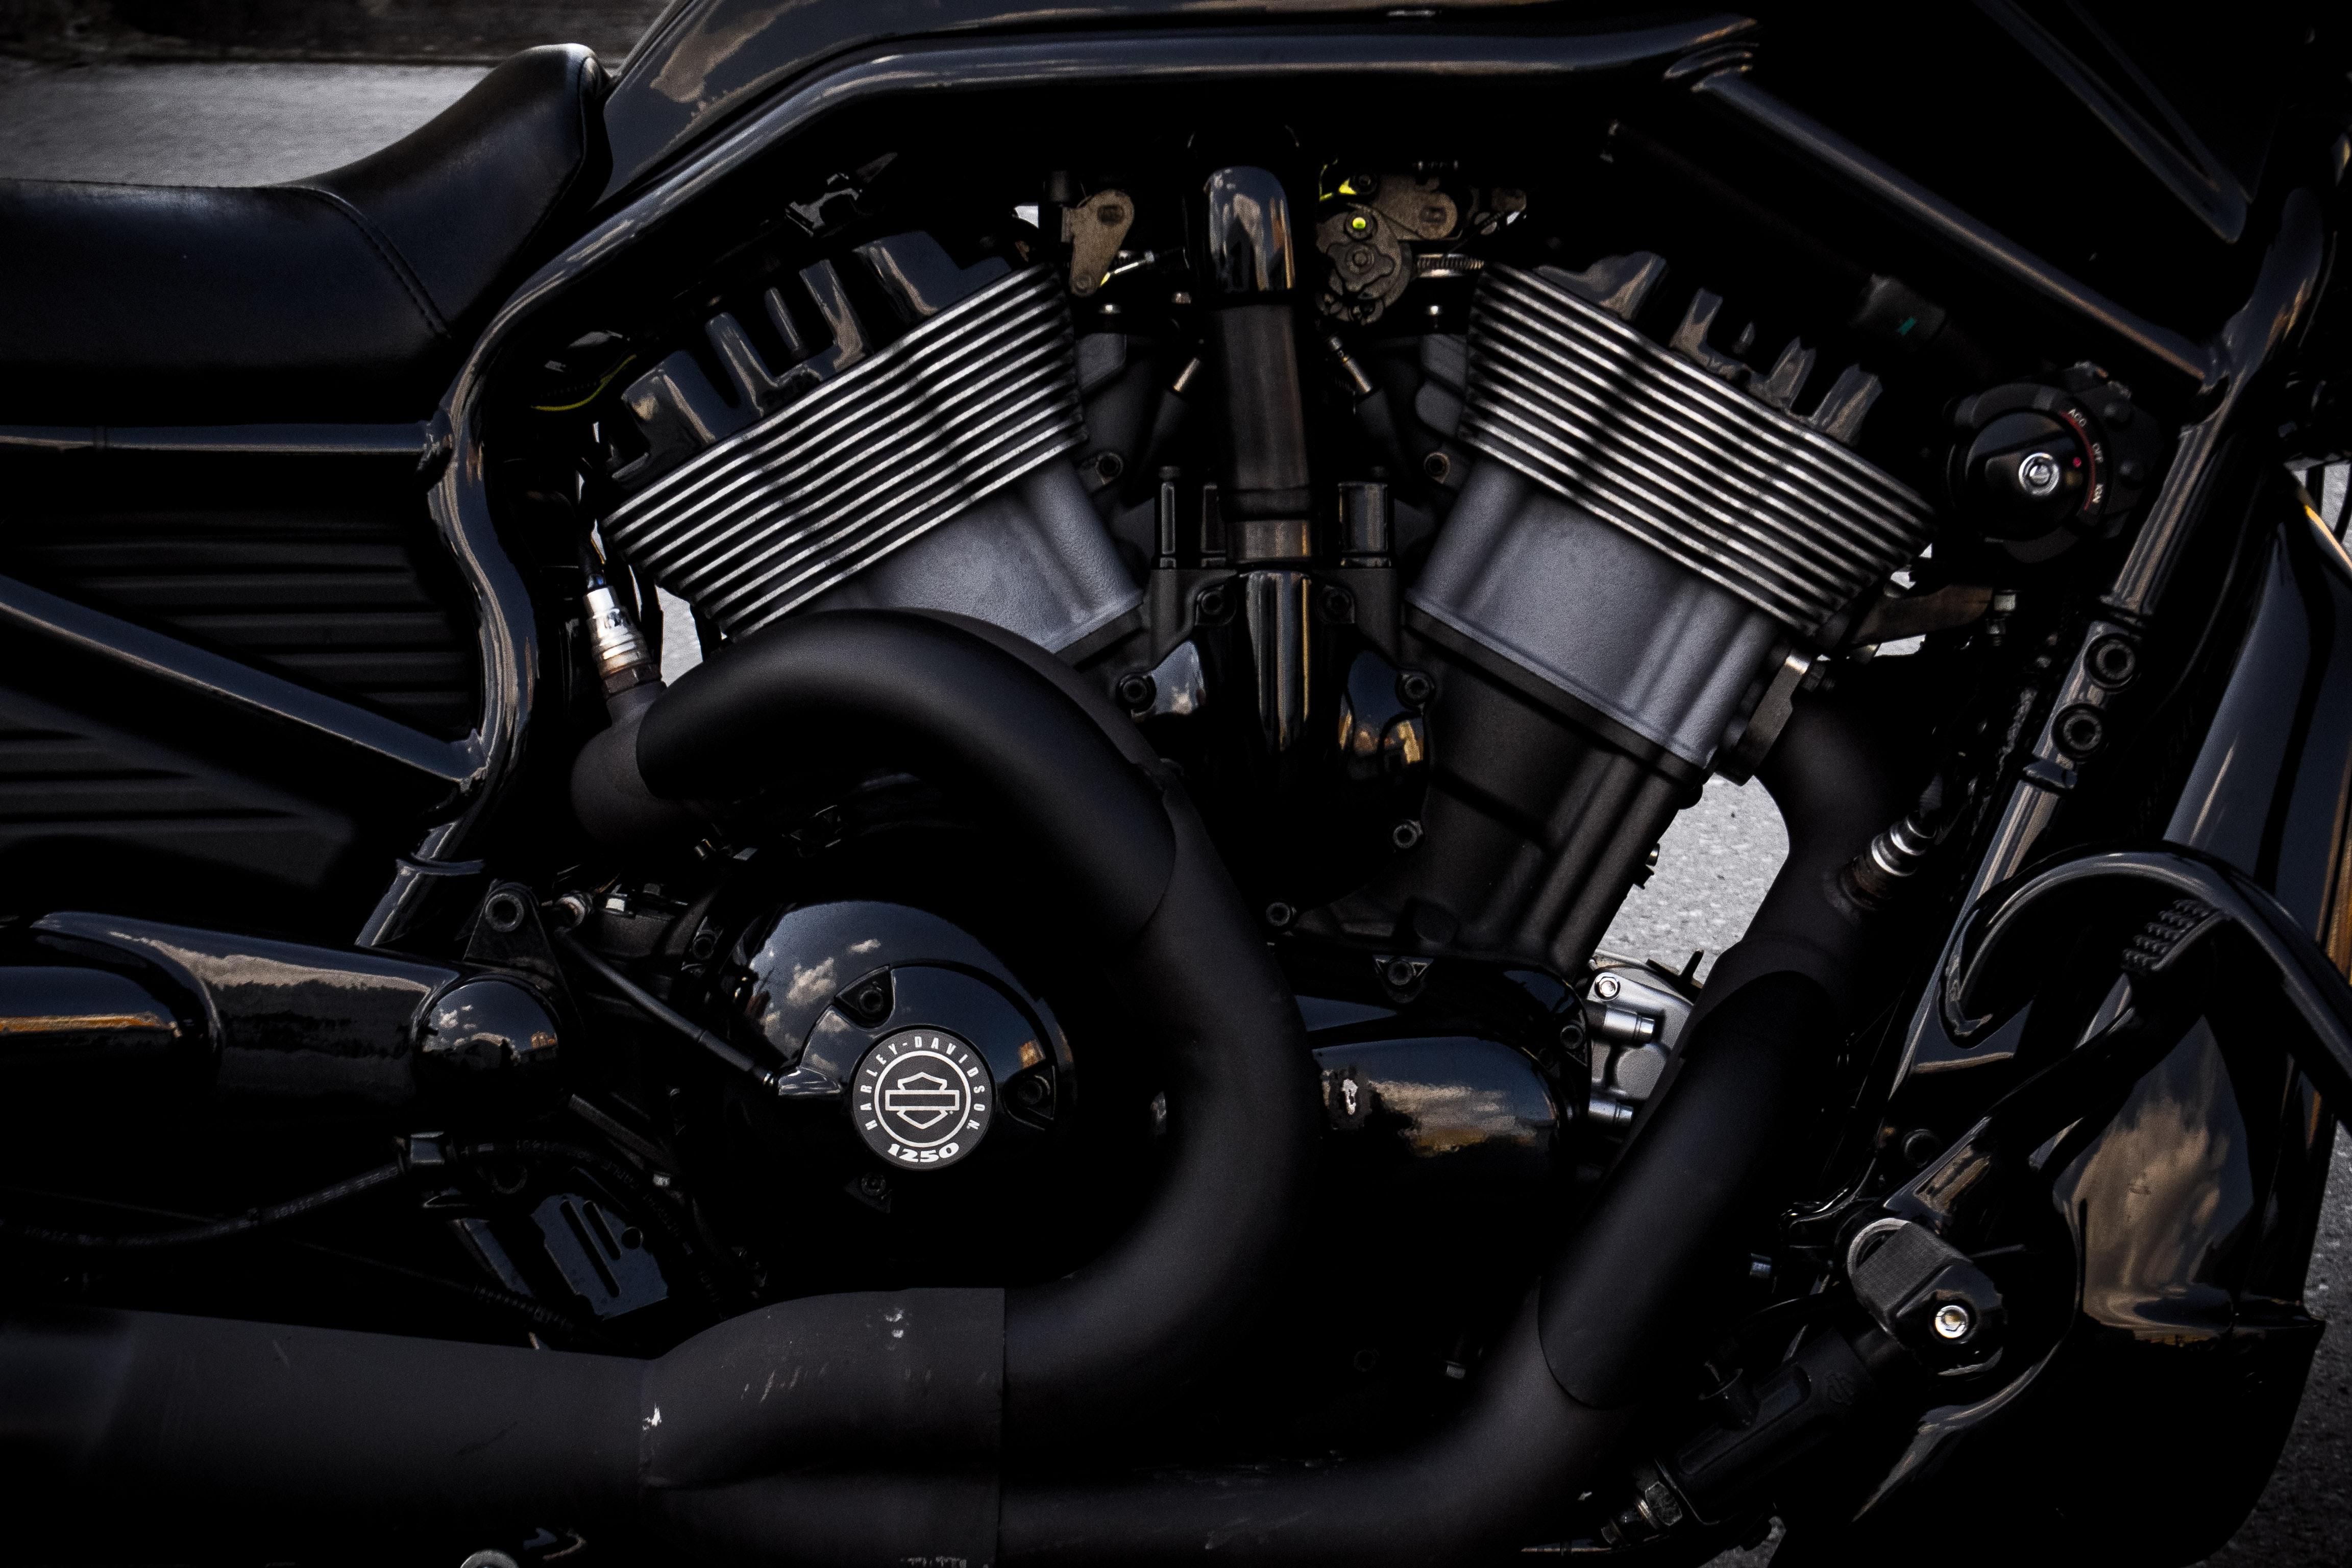 gray and black motorcycle engine